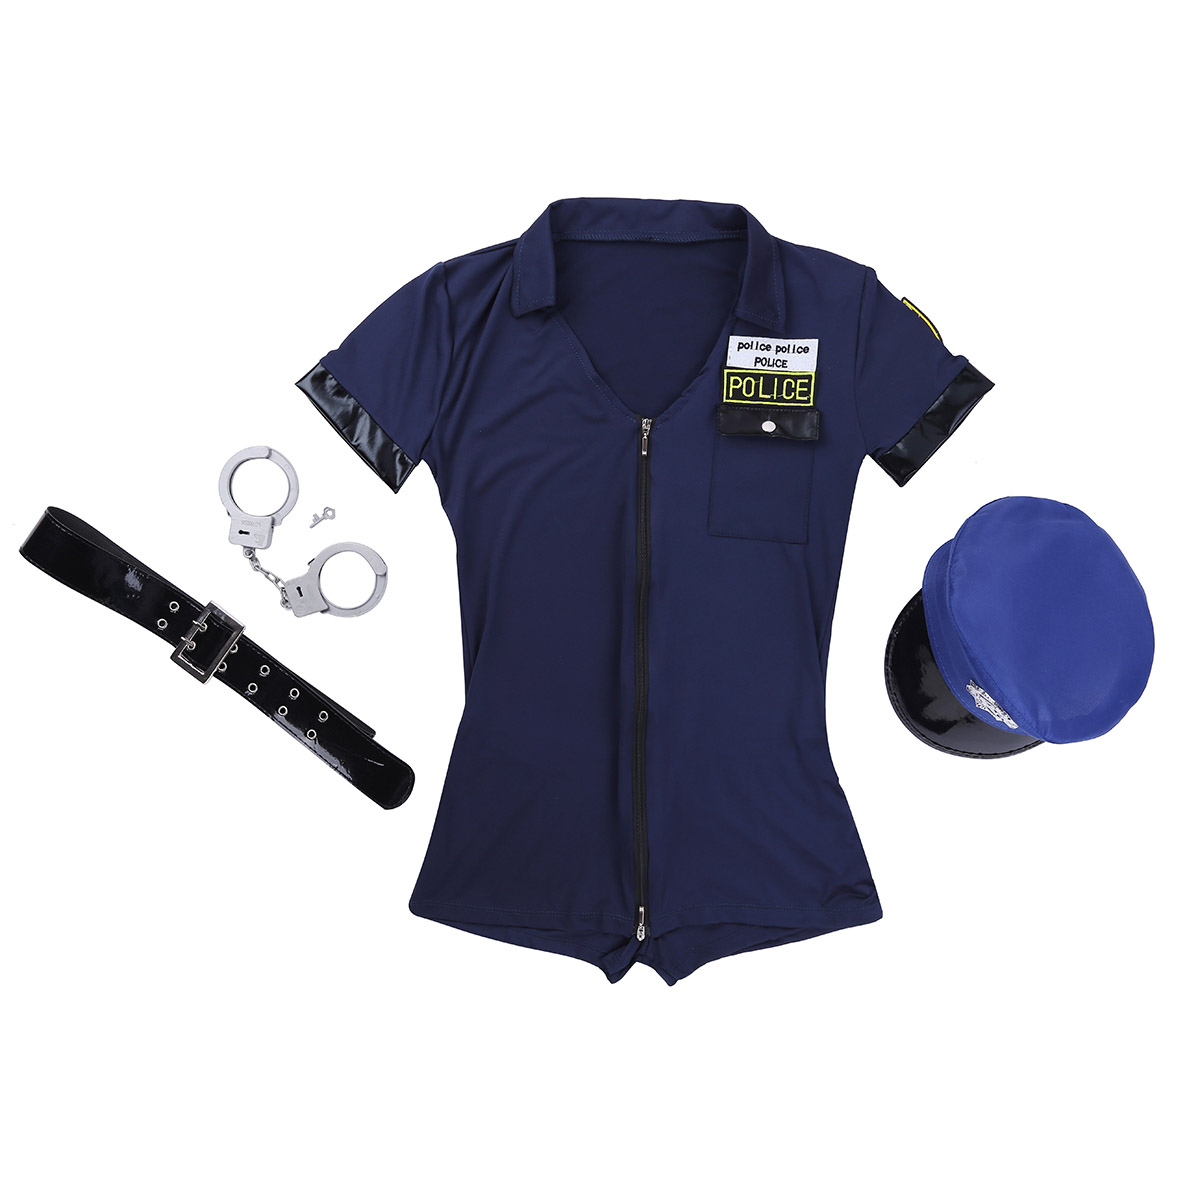 Women Police Officer Uniform Cosplay Costume Short Sleeves V-neck Built-in Shorts Dress With Handcuffs Belt Hat Sexy Costumes